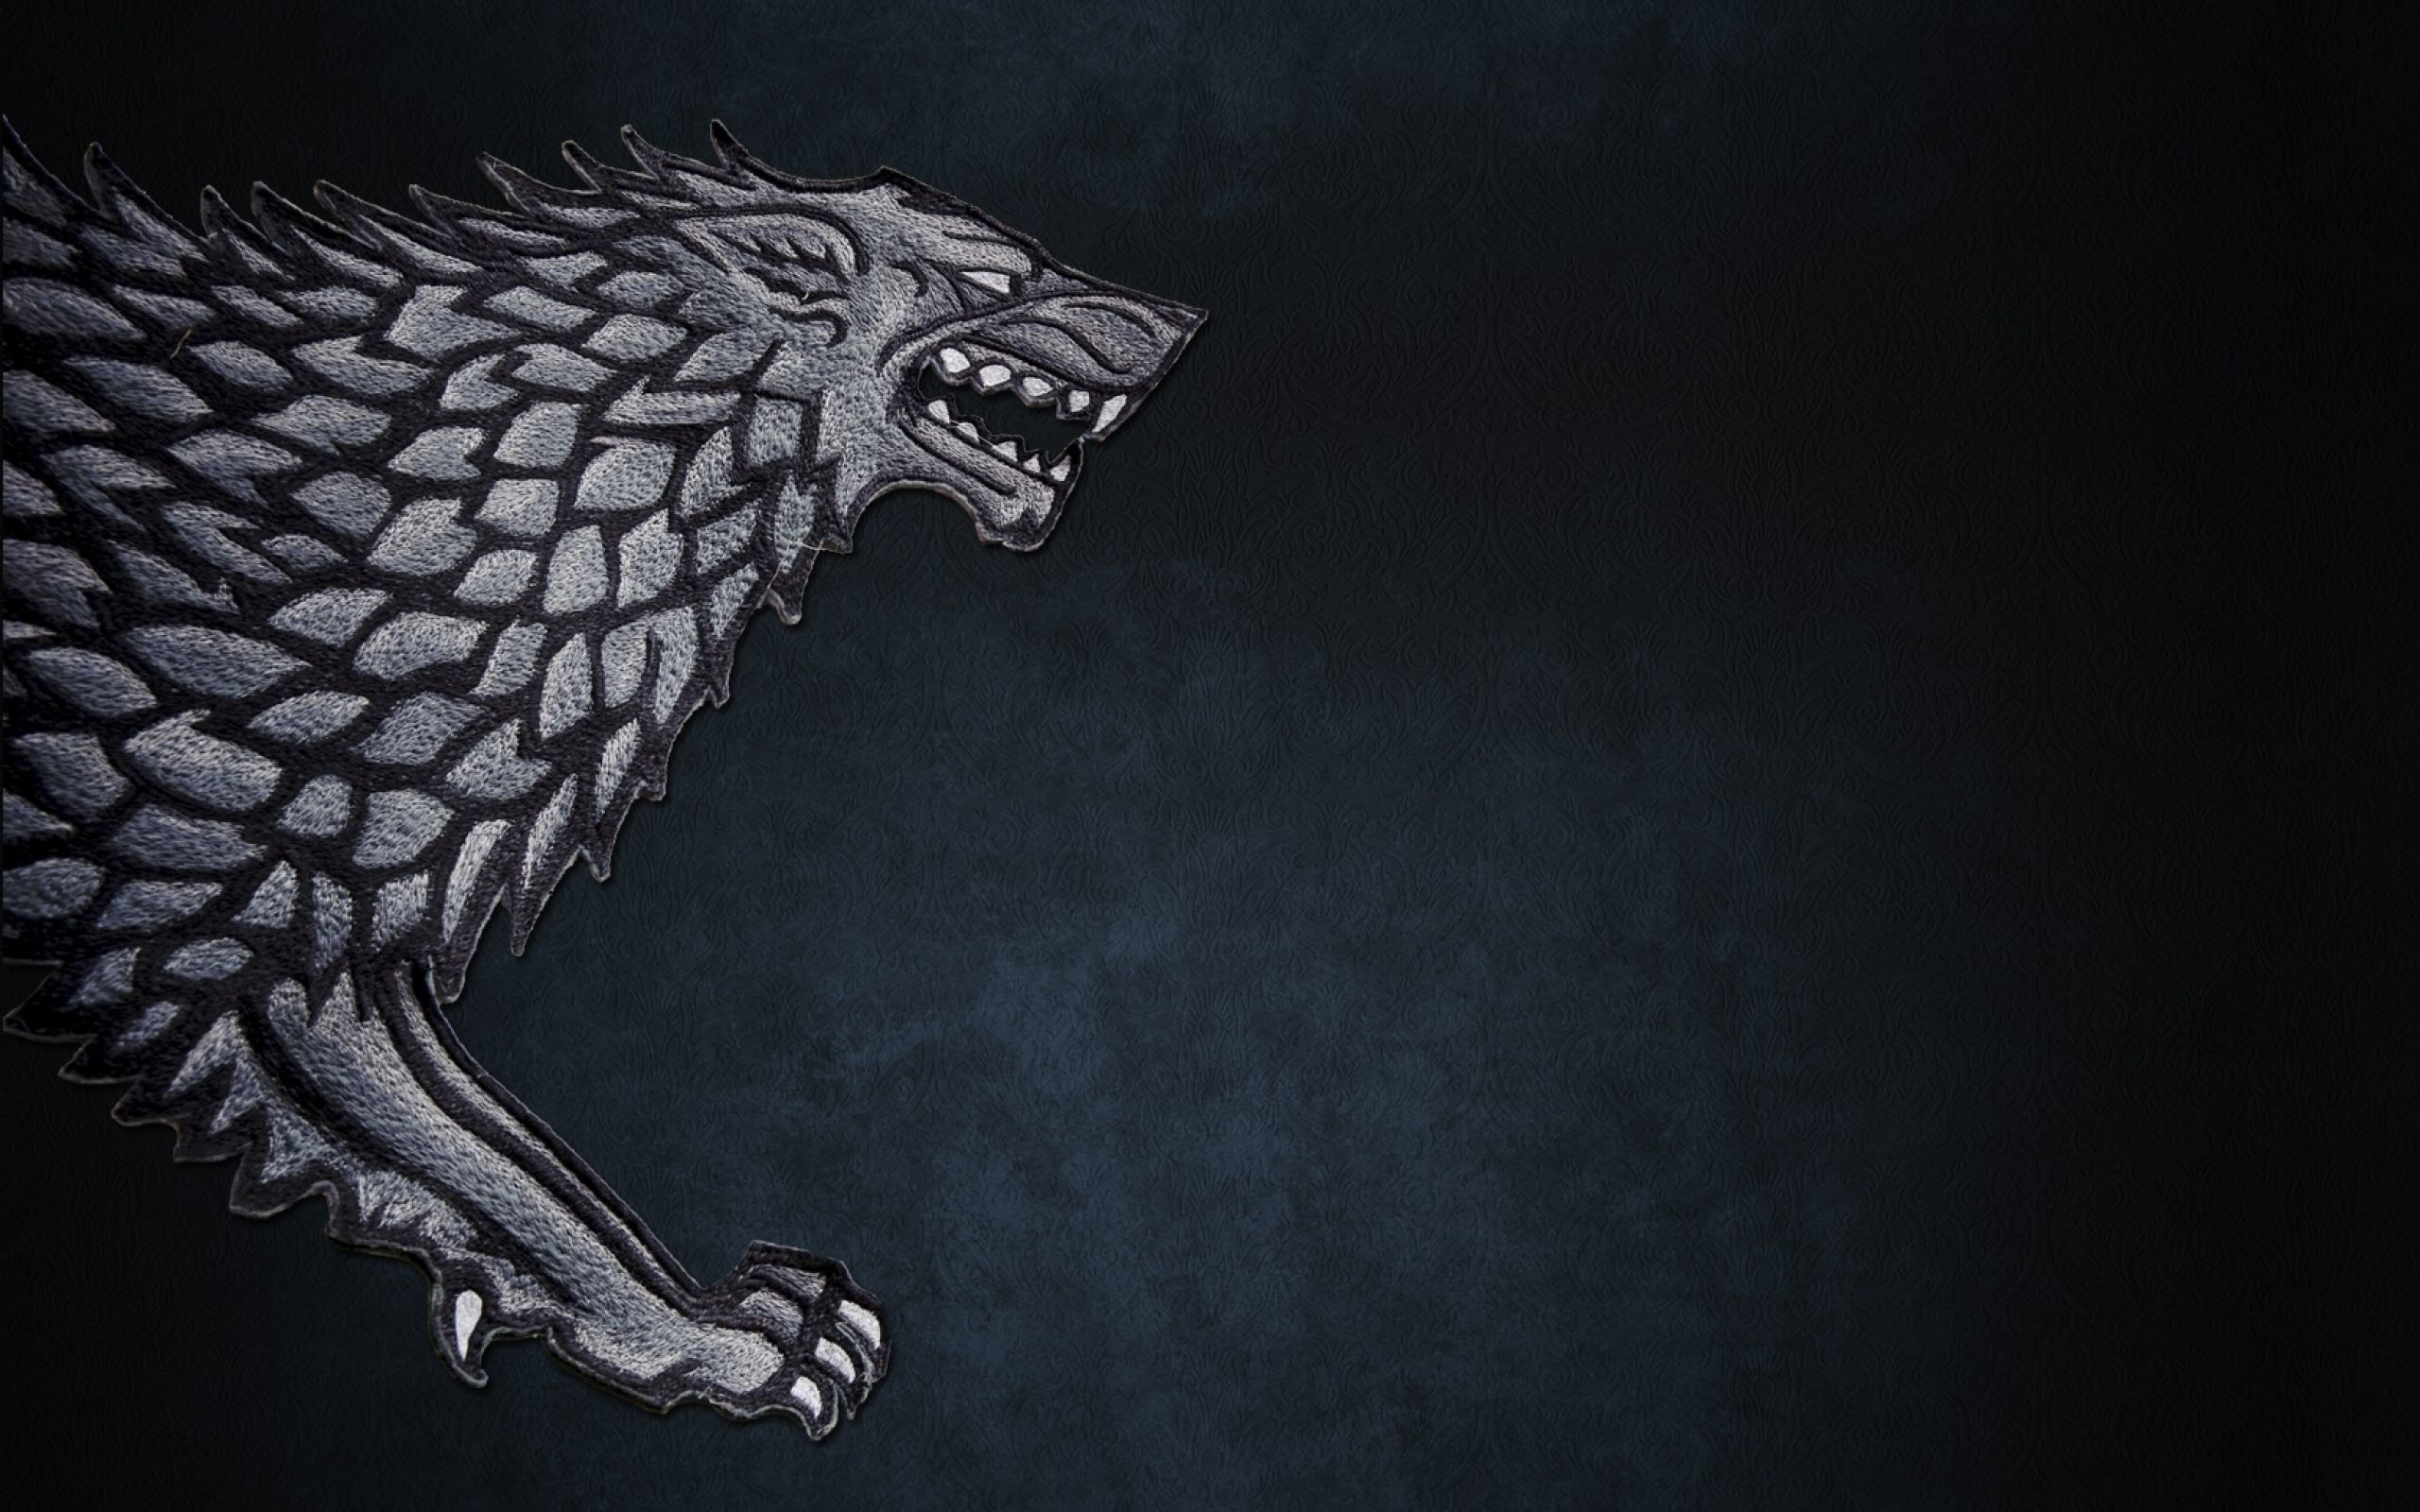 2560x1600 Wolves game of thrones a song of ice and fire stark direwolf house .